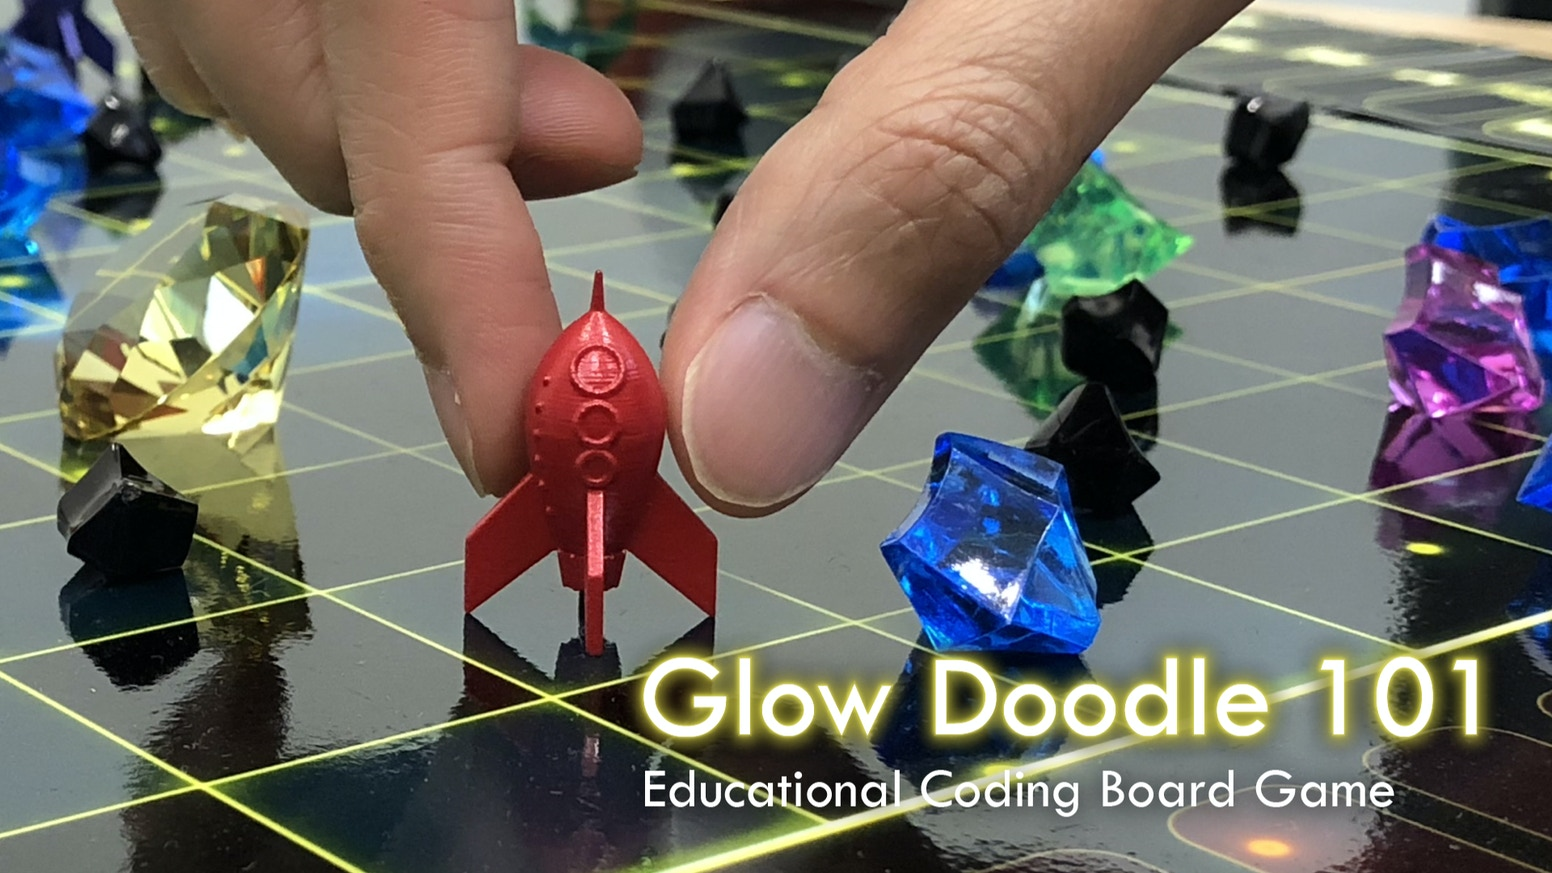 Glow Doodle 101 - Educational Coding Board Game (Relaunch